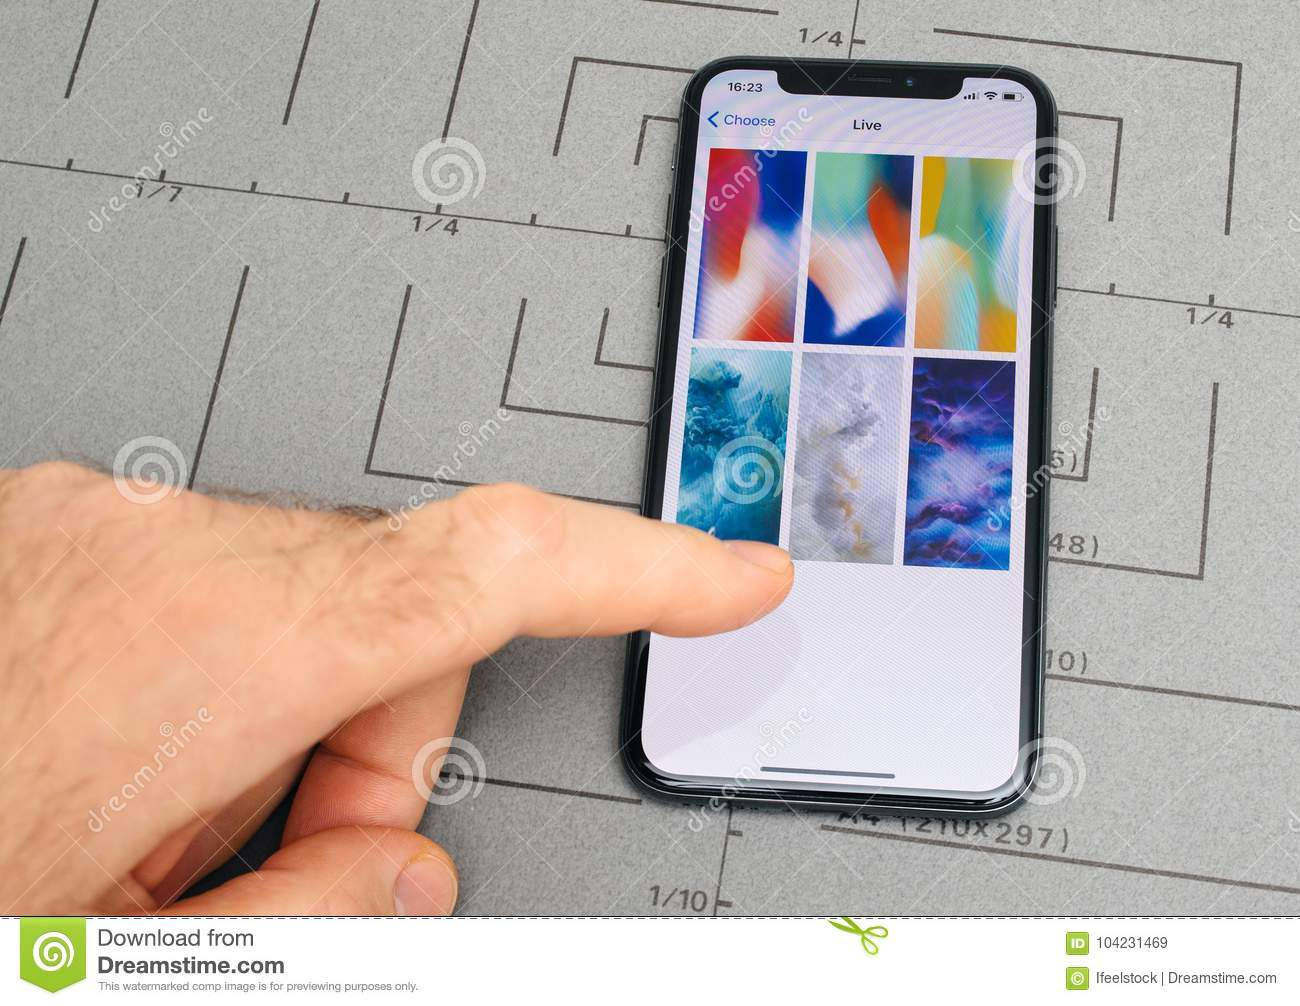 Paris, France - Nov 9, 2017: male hand touch selecting New Apple iPhone X 10 smartphone screen after unboxing and selecting live wallpaper